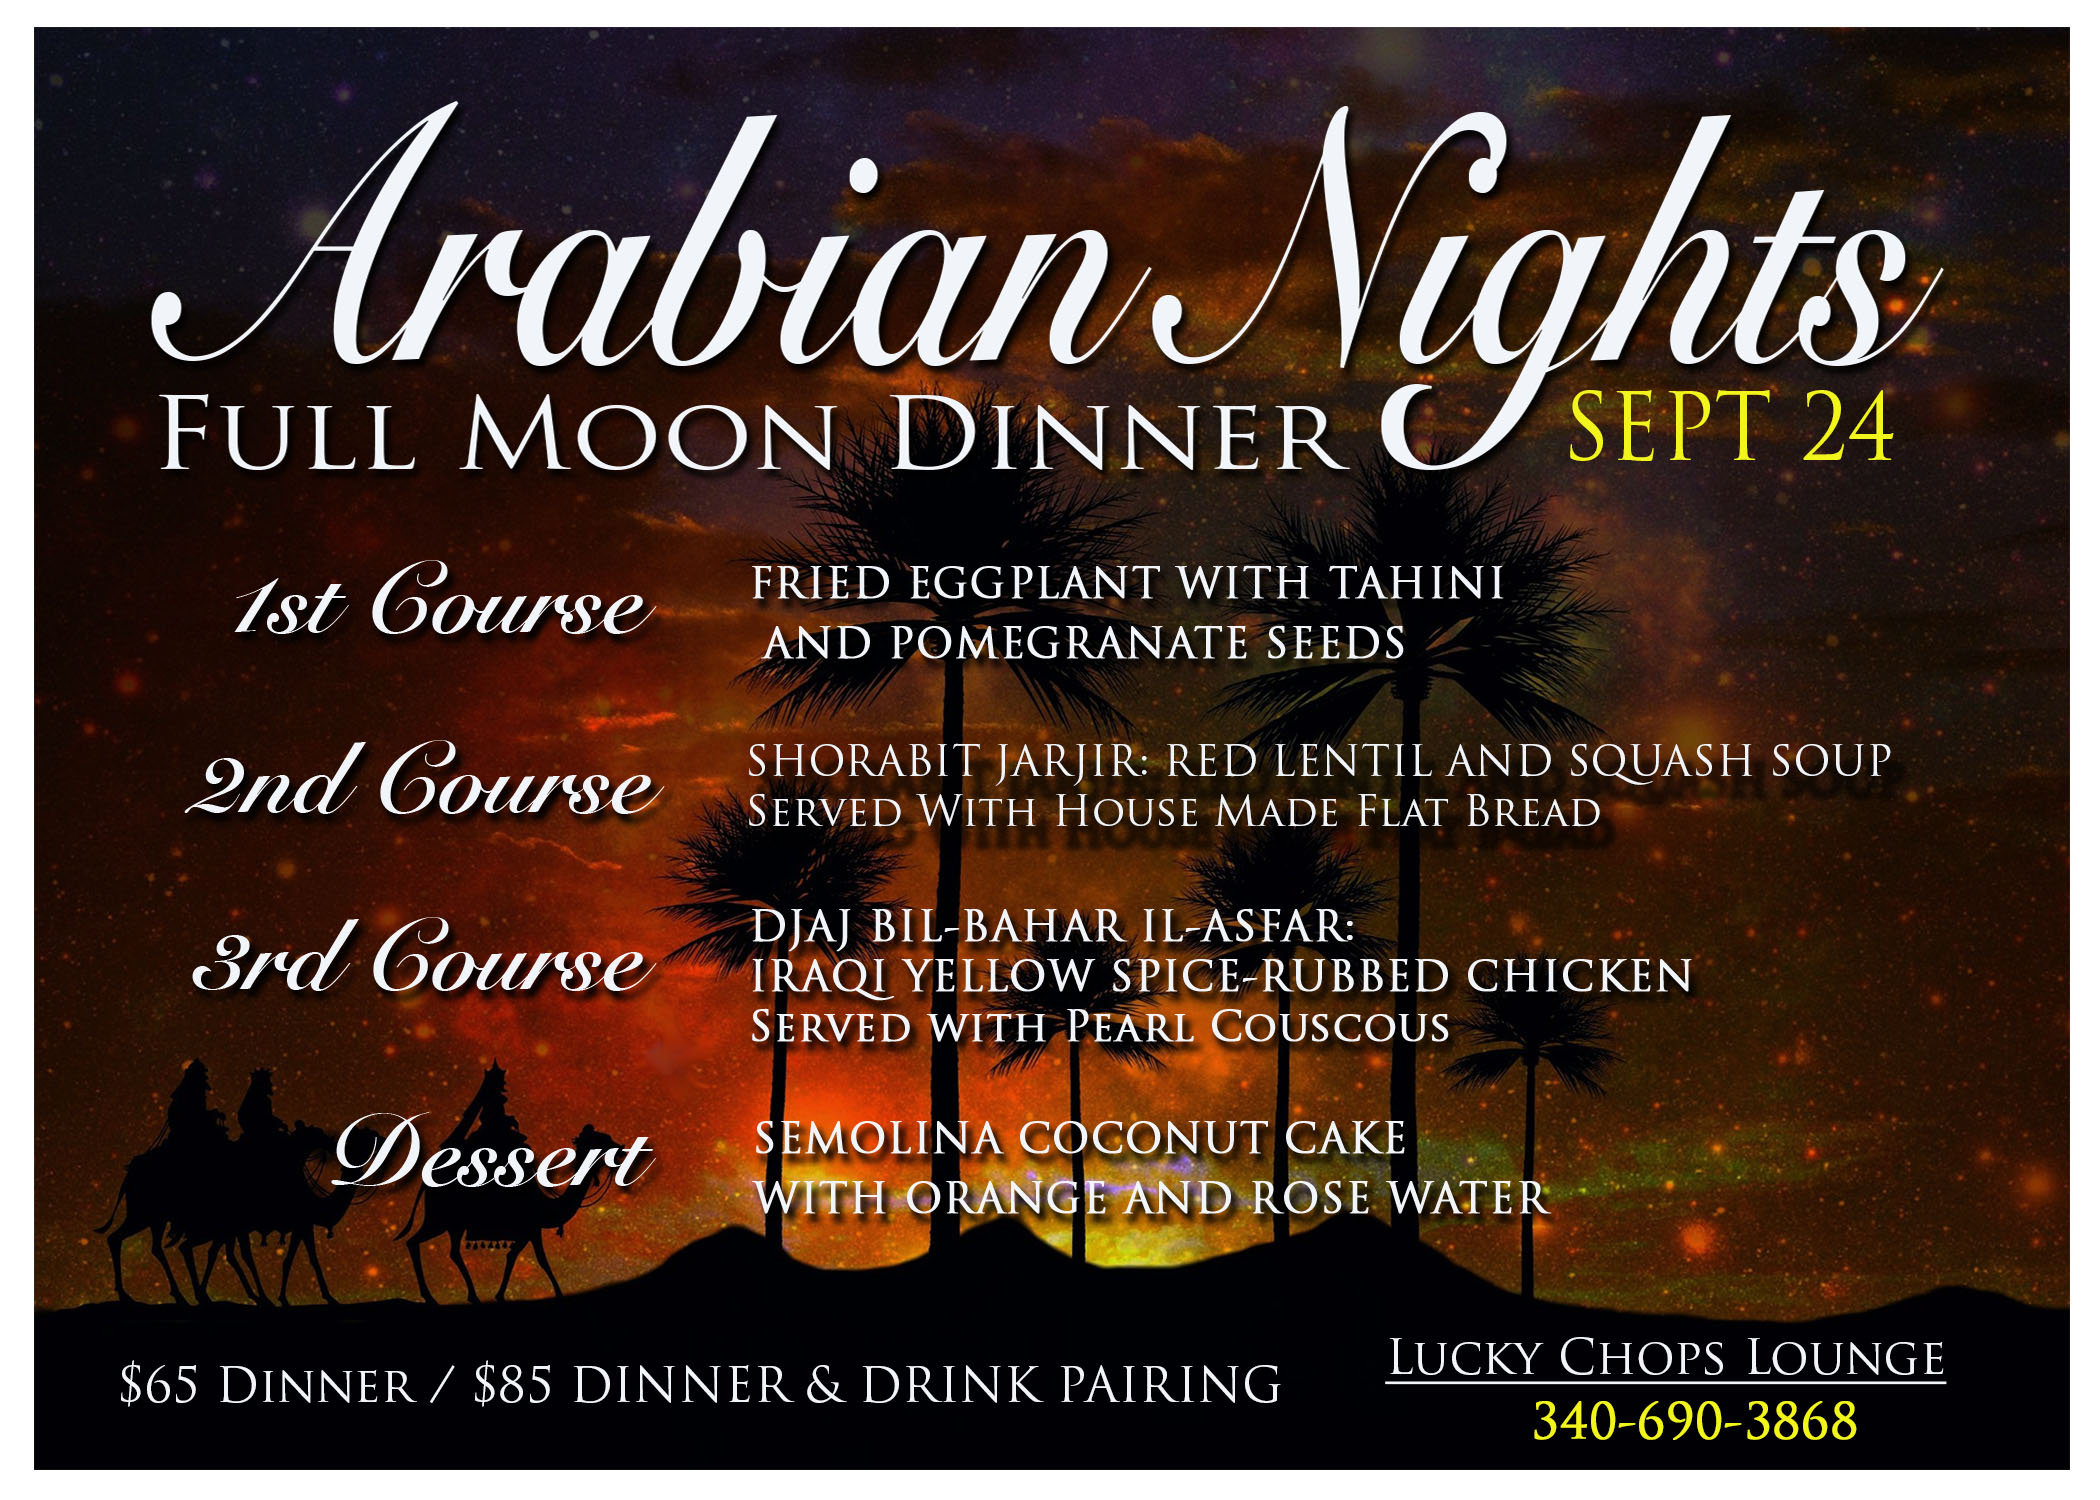 Arabian Nights menu.jpg